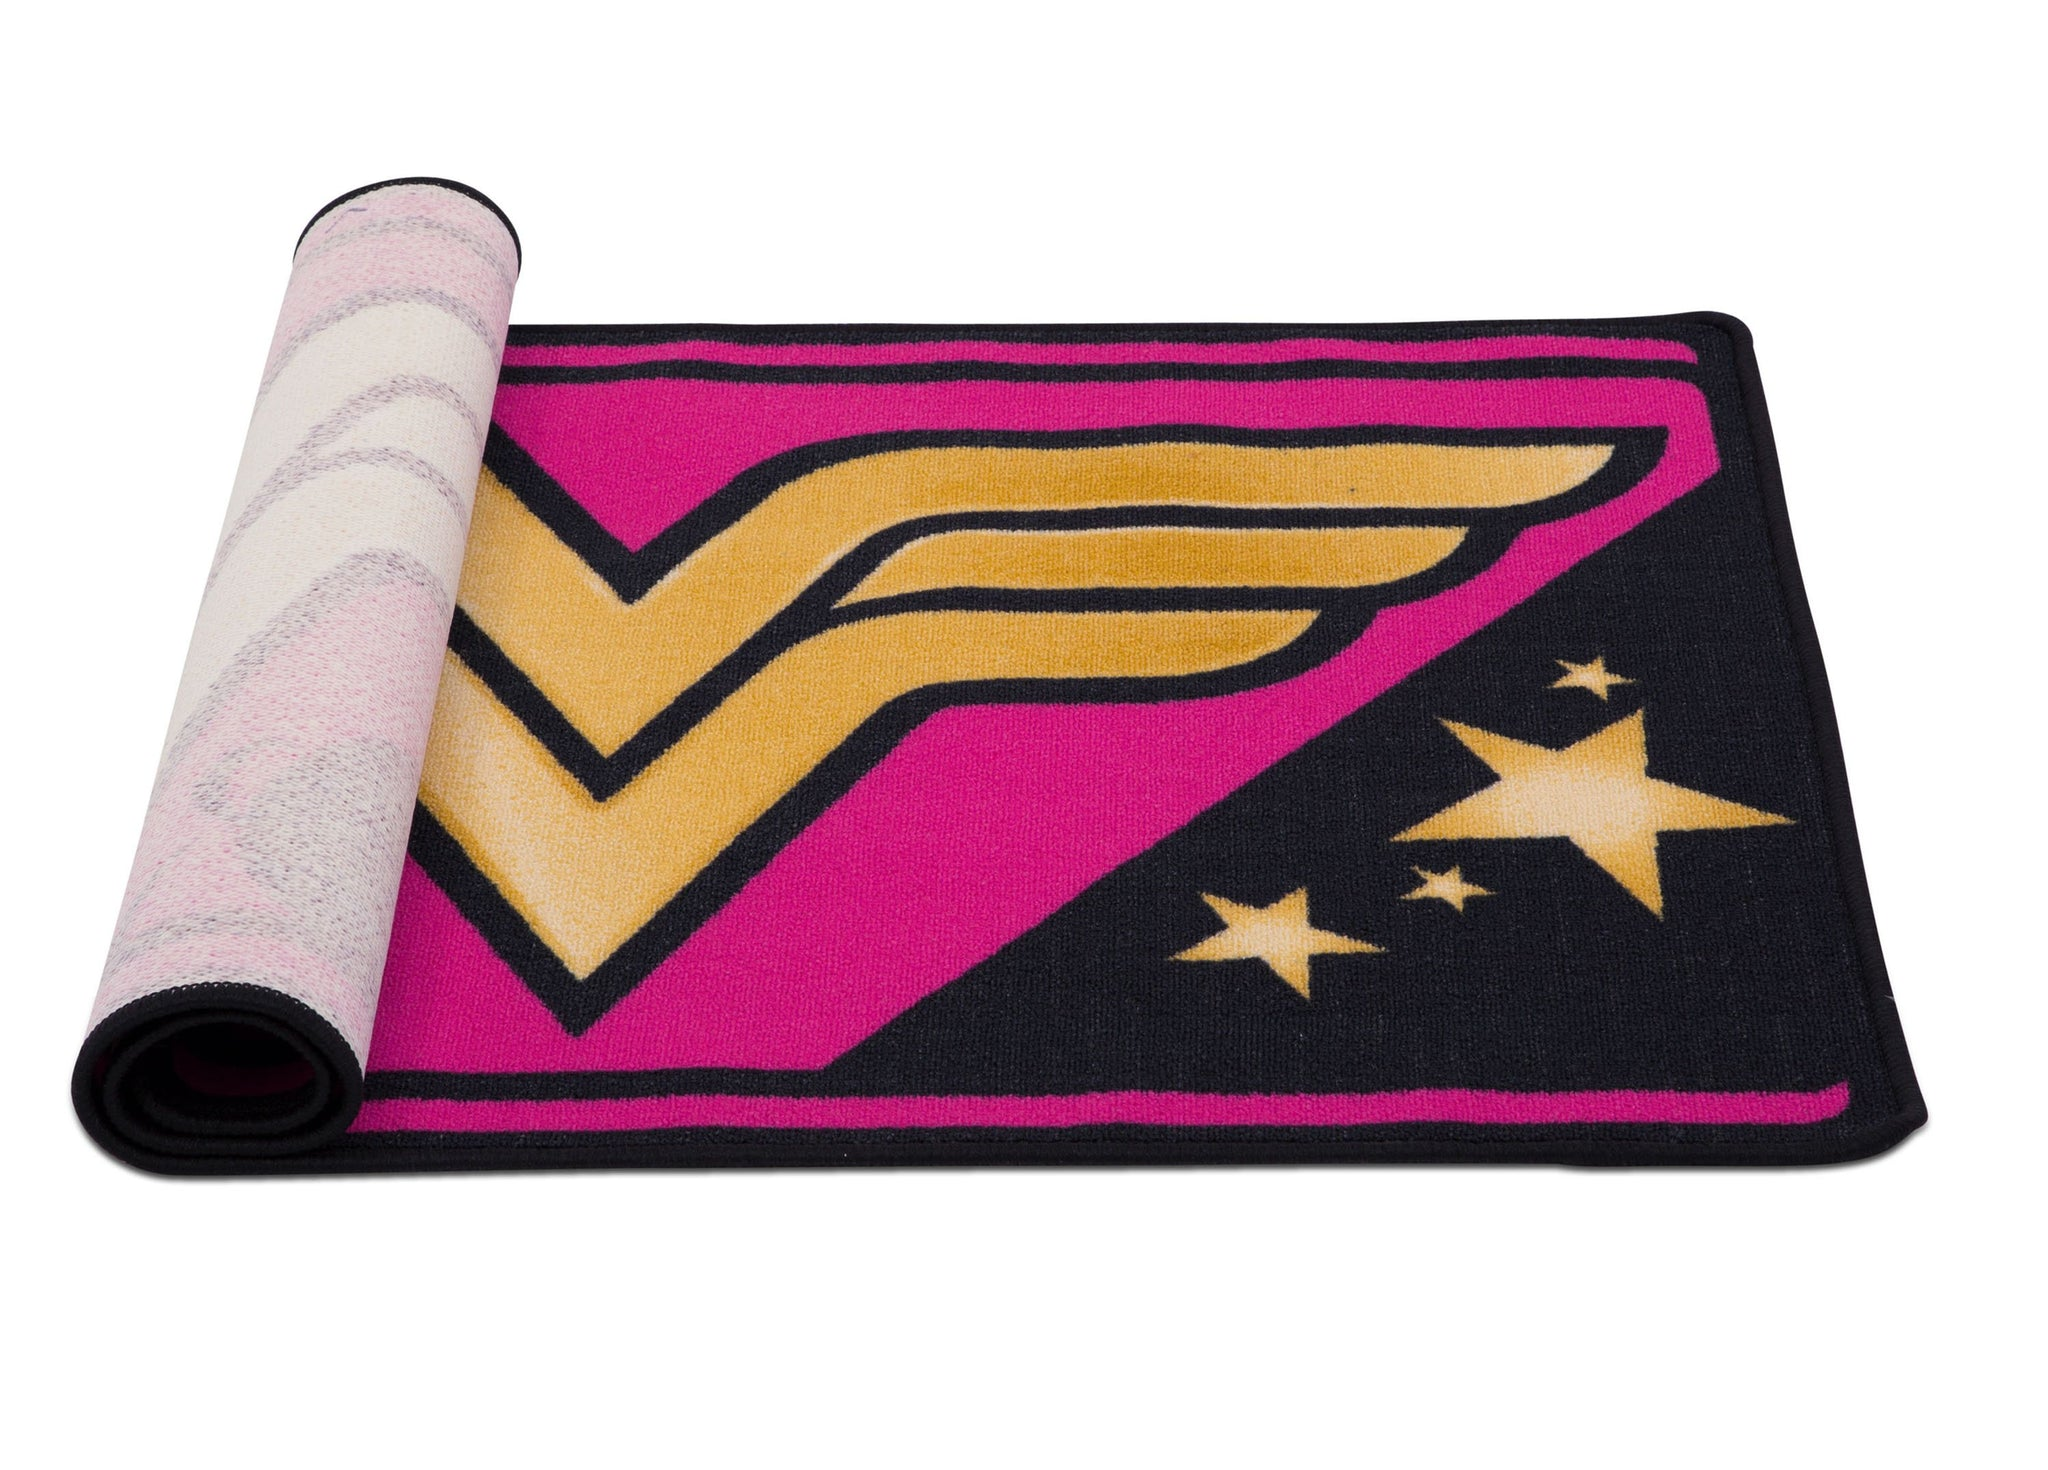 Delta Children Wonder Woman (1210) Soft Area Rug with Non-Slip Backing (TR80056WW), Rolled, a3a